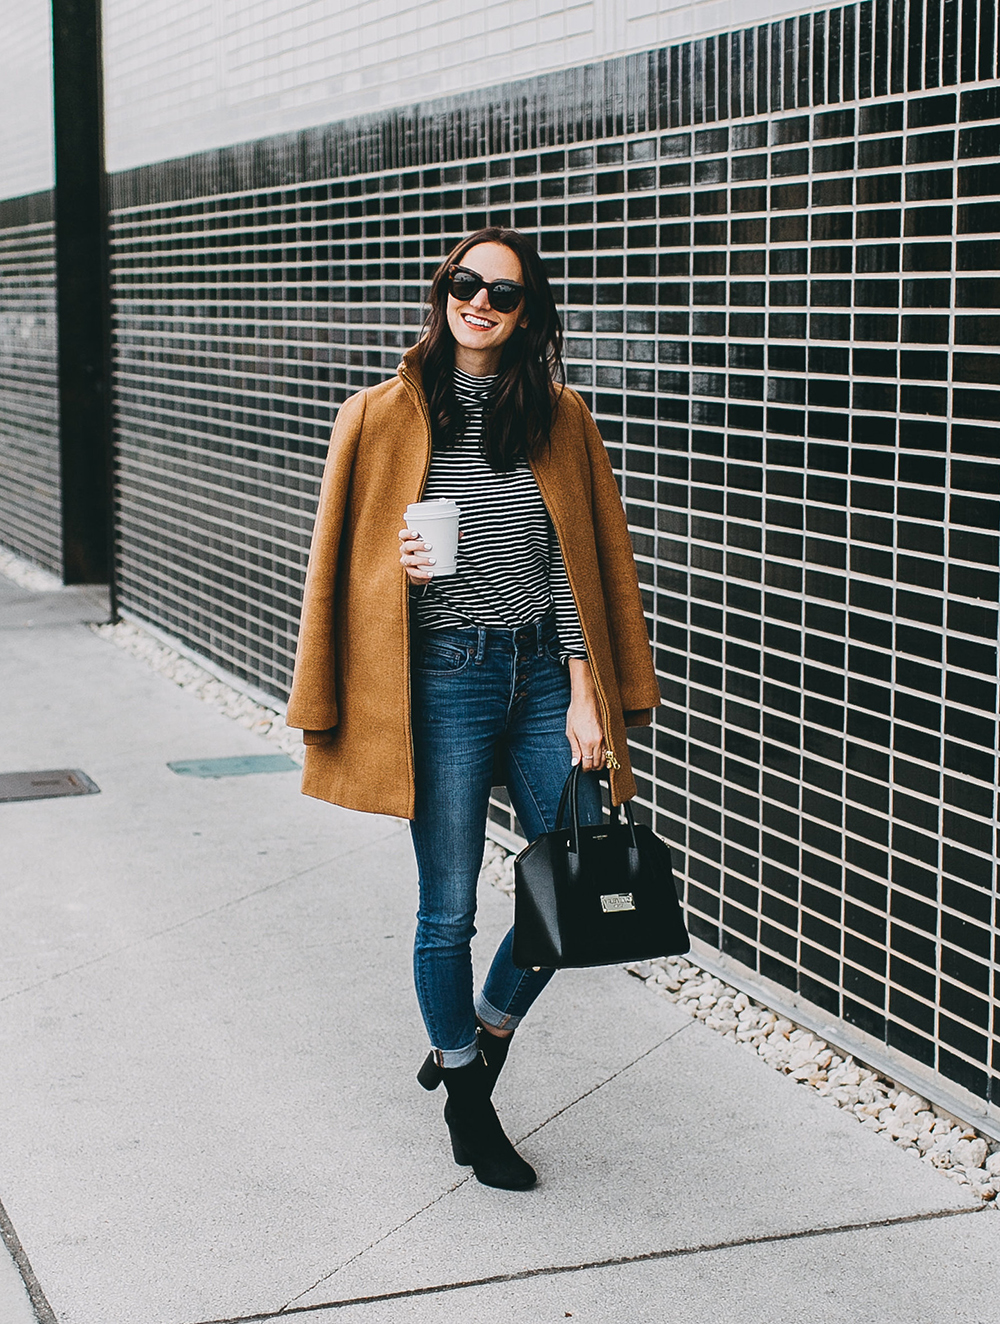 livvyland-blog-olivia-watson-austin-texas-fashion-blogger-j-crew-camel-winter-coat-striped-turtleneck-mid-calf-ankle-booties-4